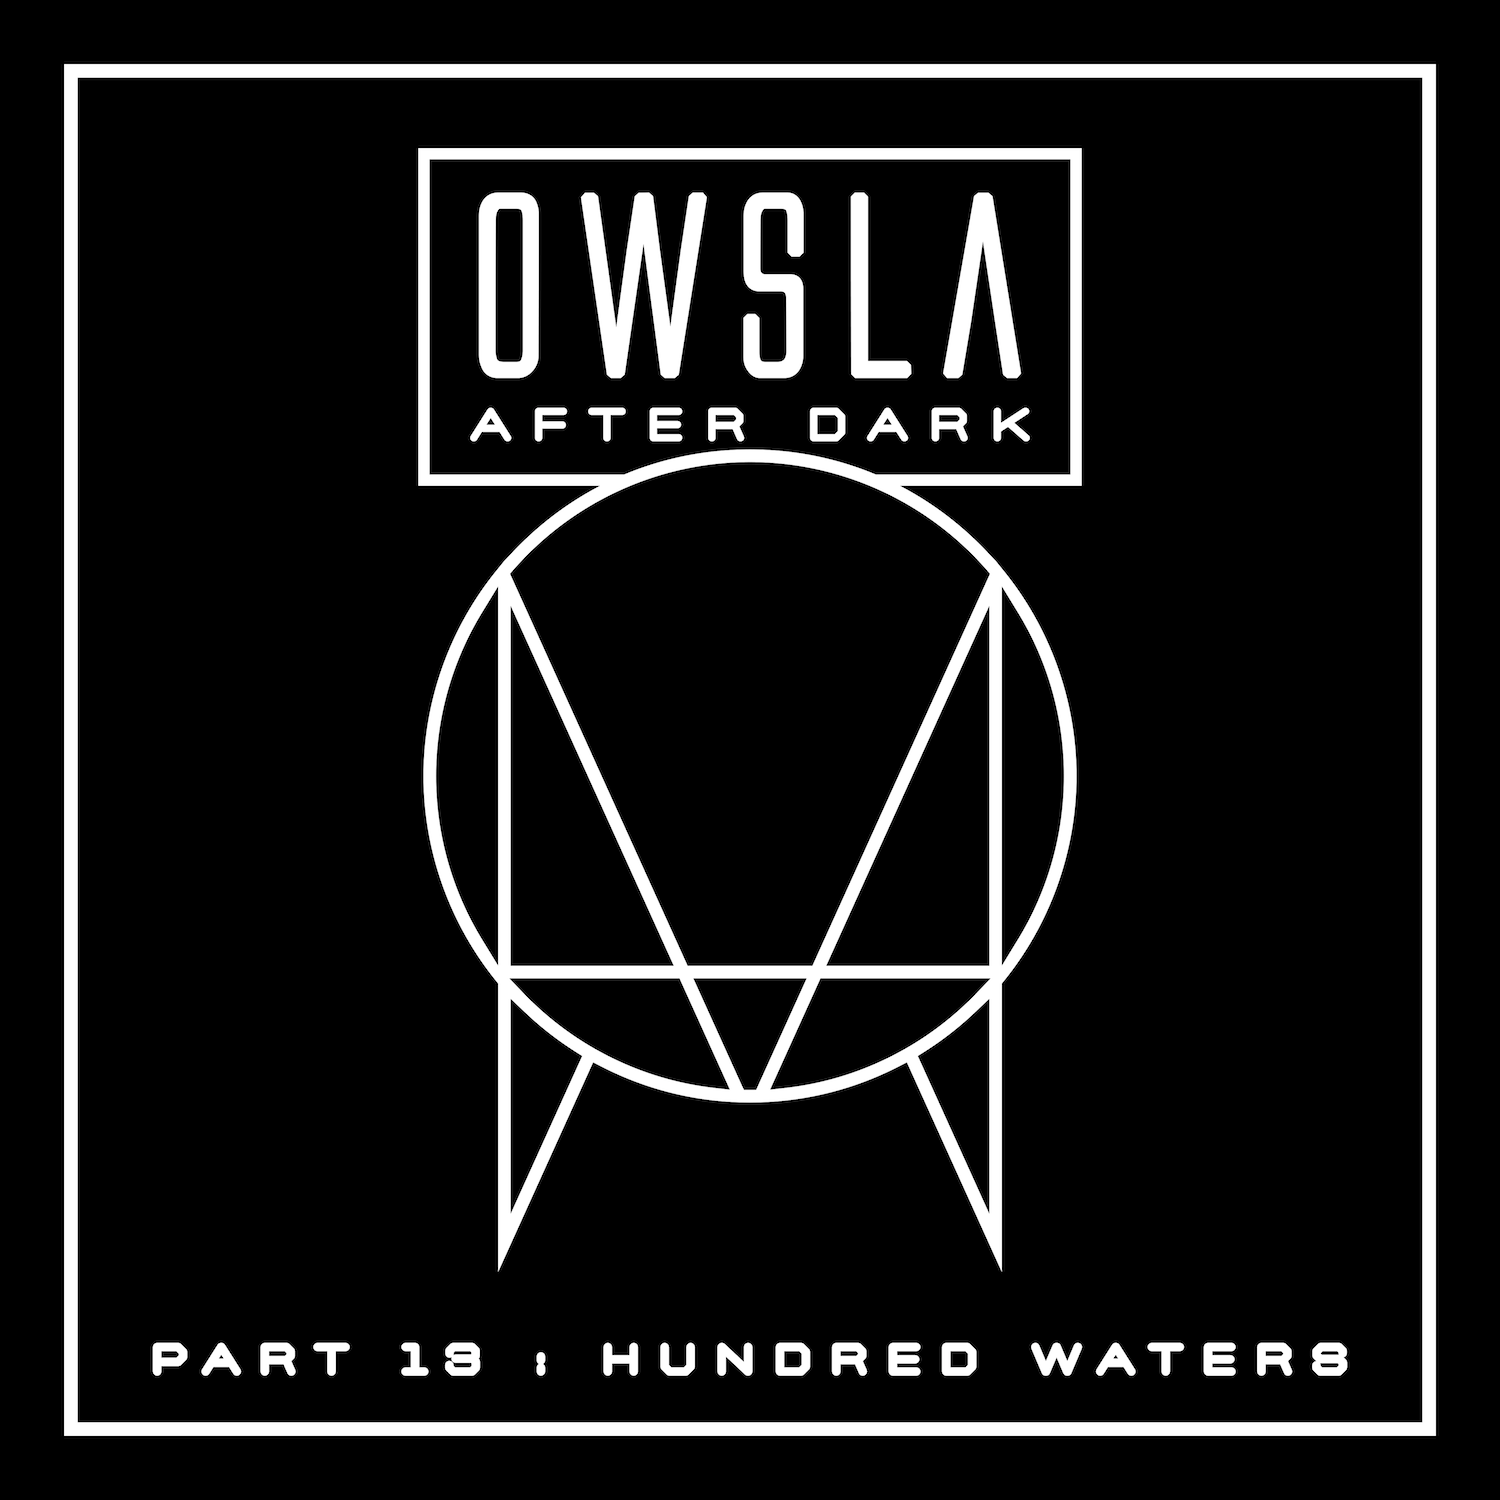 OWSLA After Dark Hundred Waters